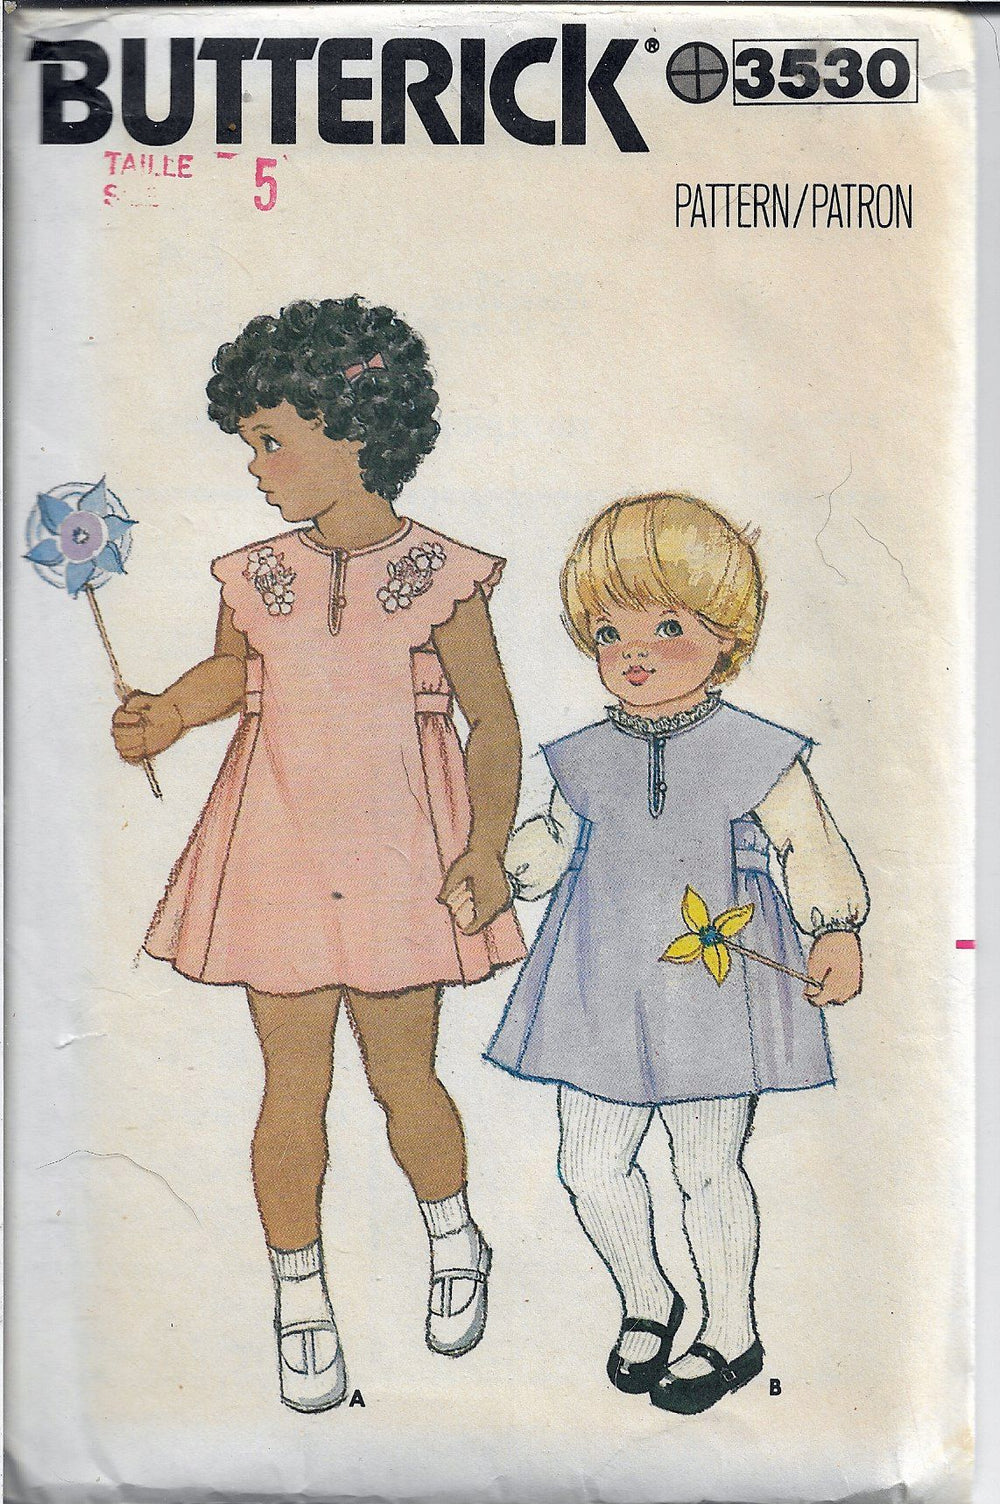 Butterick 3530 Little Girls Jumper Flared Dress Vintage Sewing Pattern 1980s - VintageStitching - Vintage Sewing Patterns